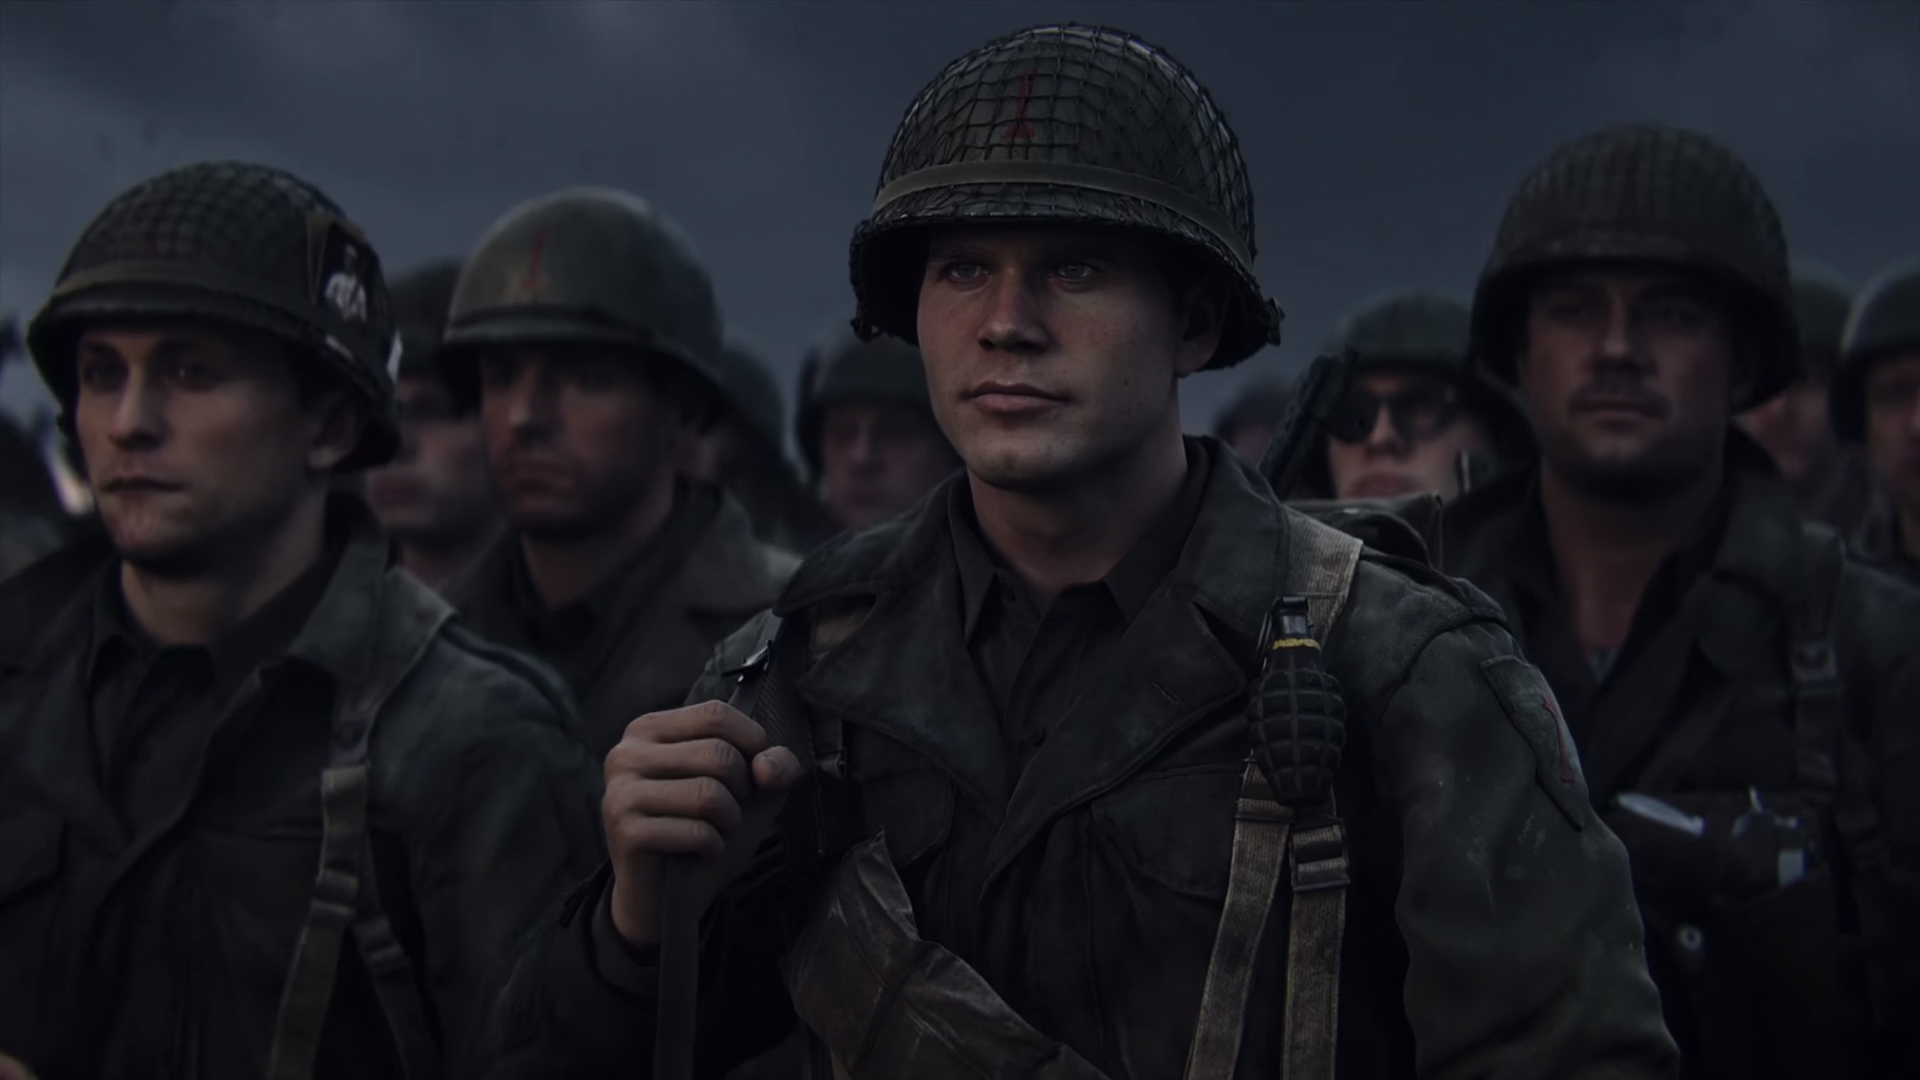 Meet A Few Of The Good Men In Our Squad For Call Of Duty WWII 1920x1080